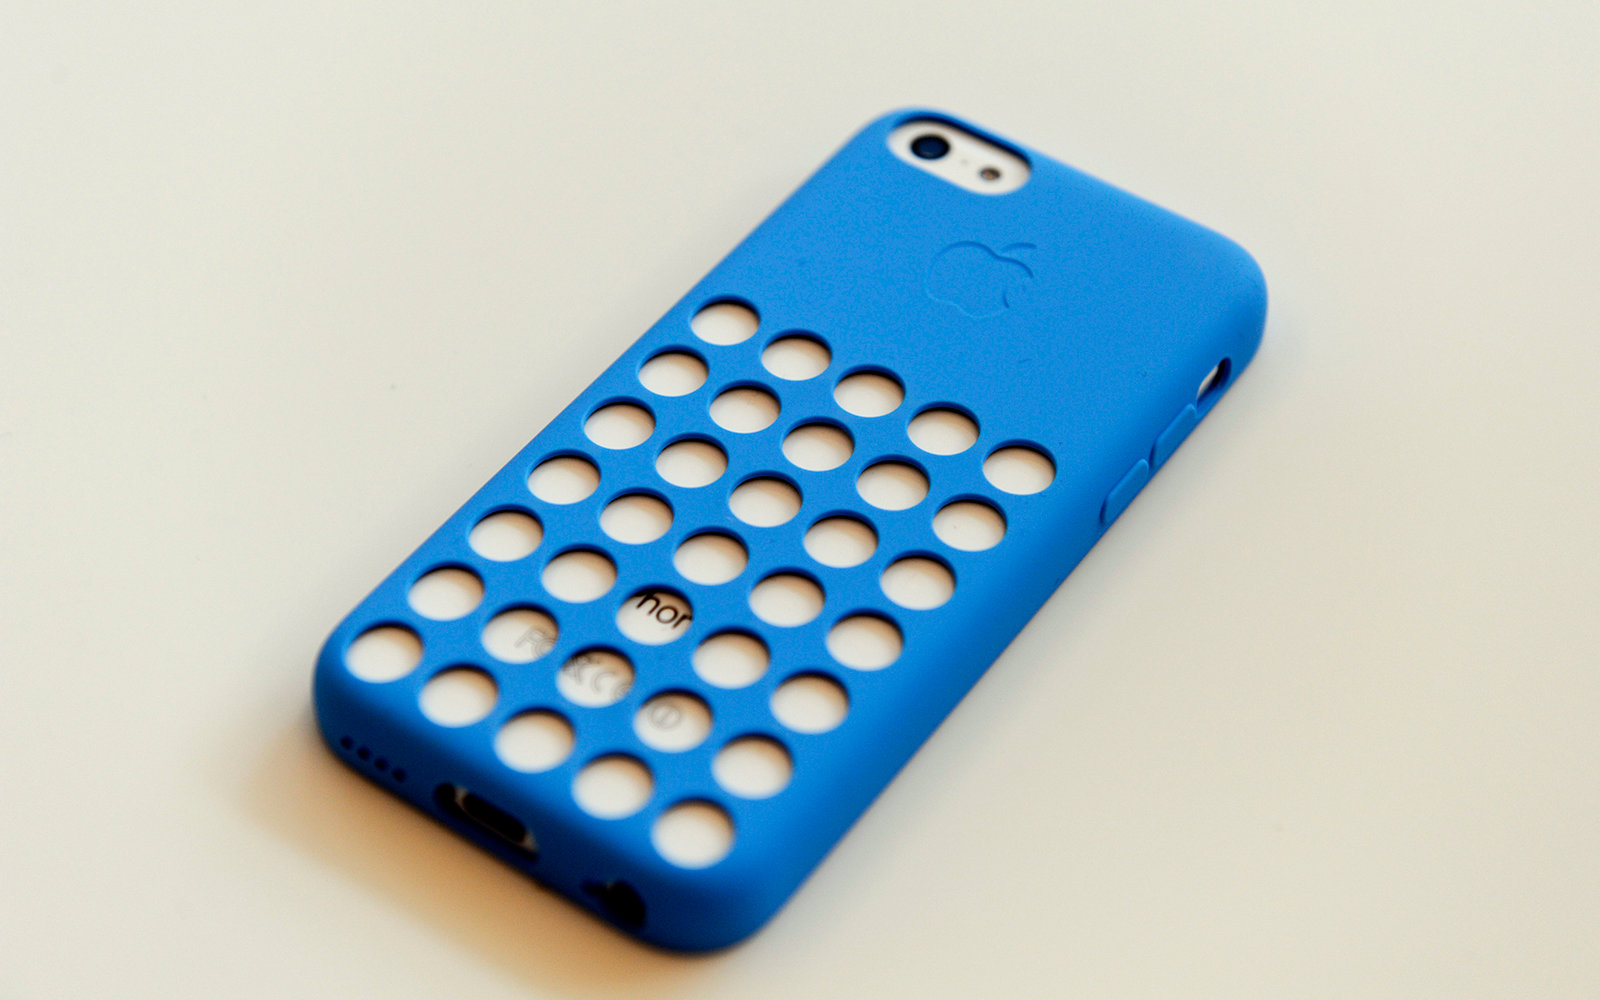 Apple iPhone with case